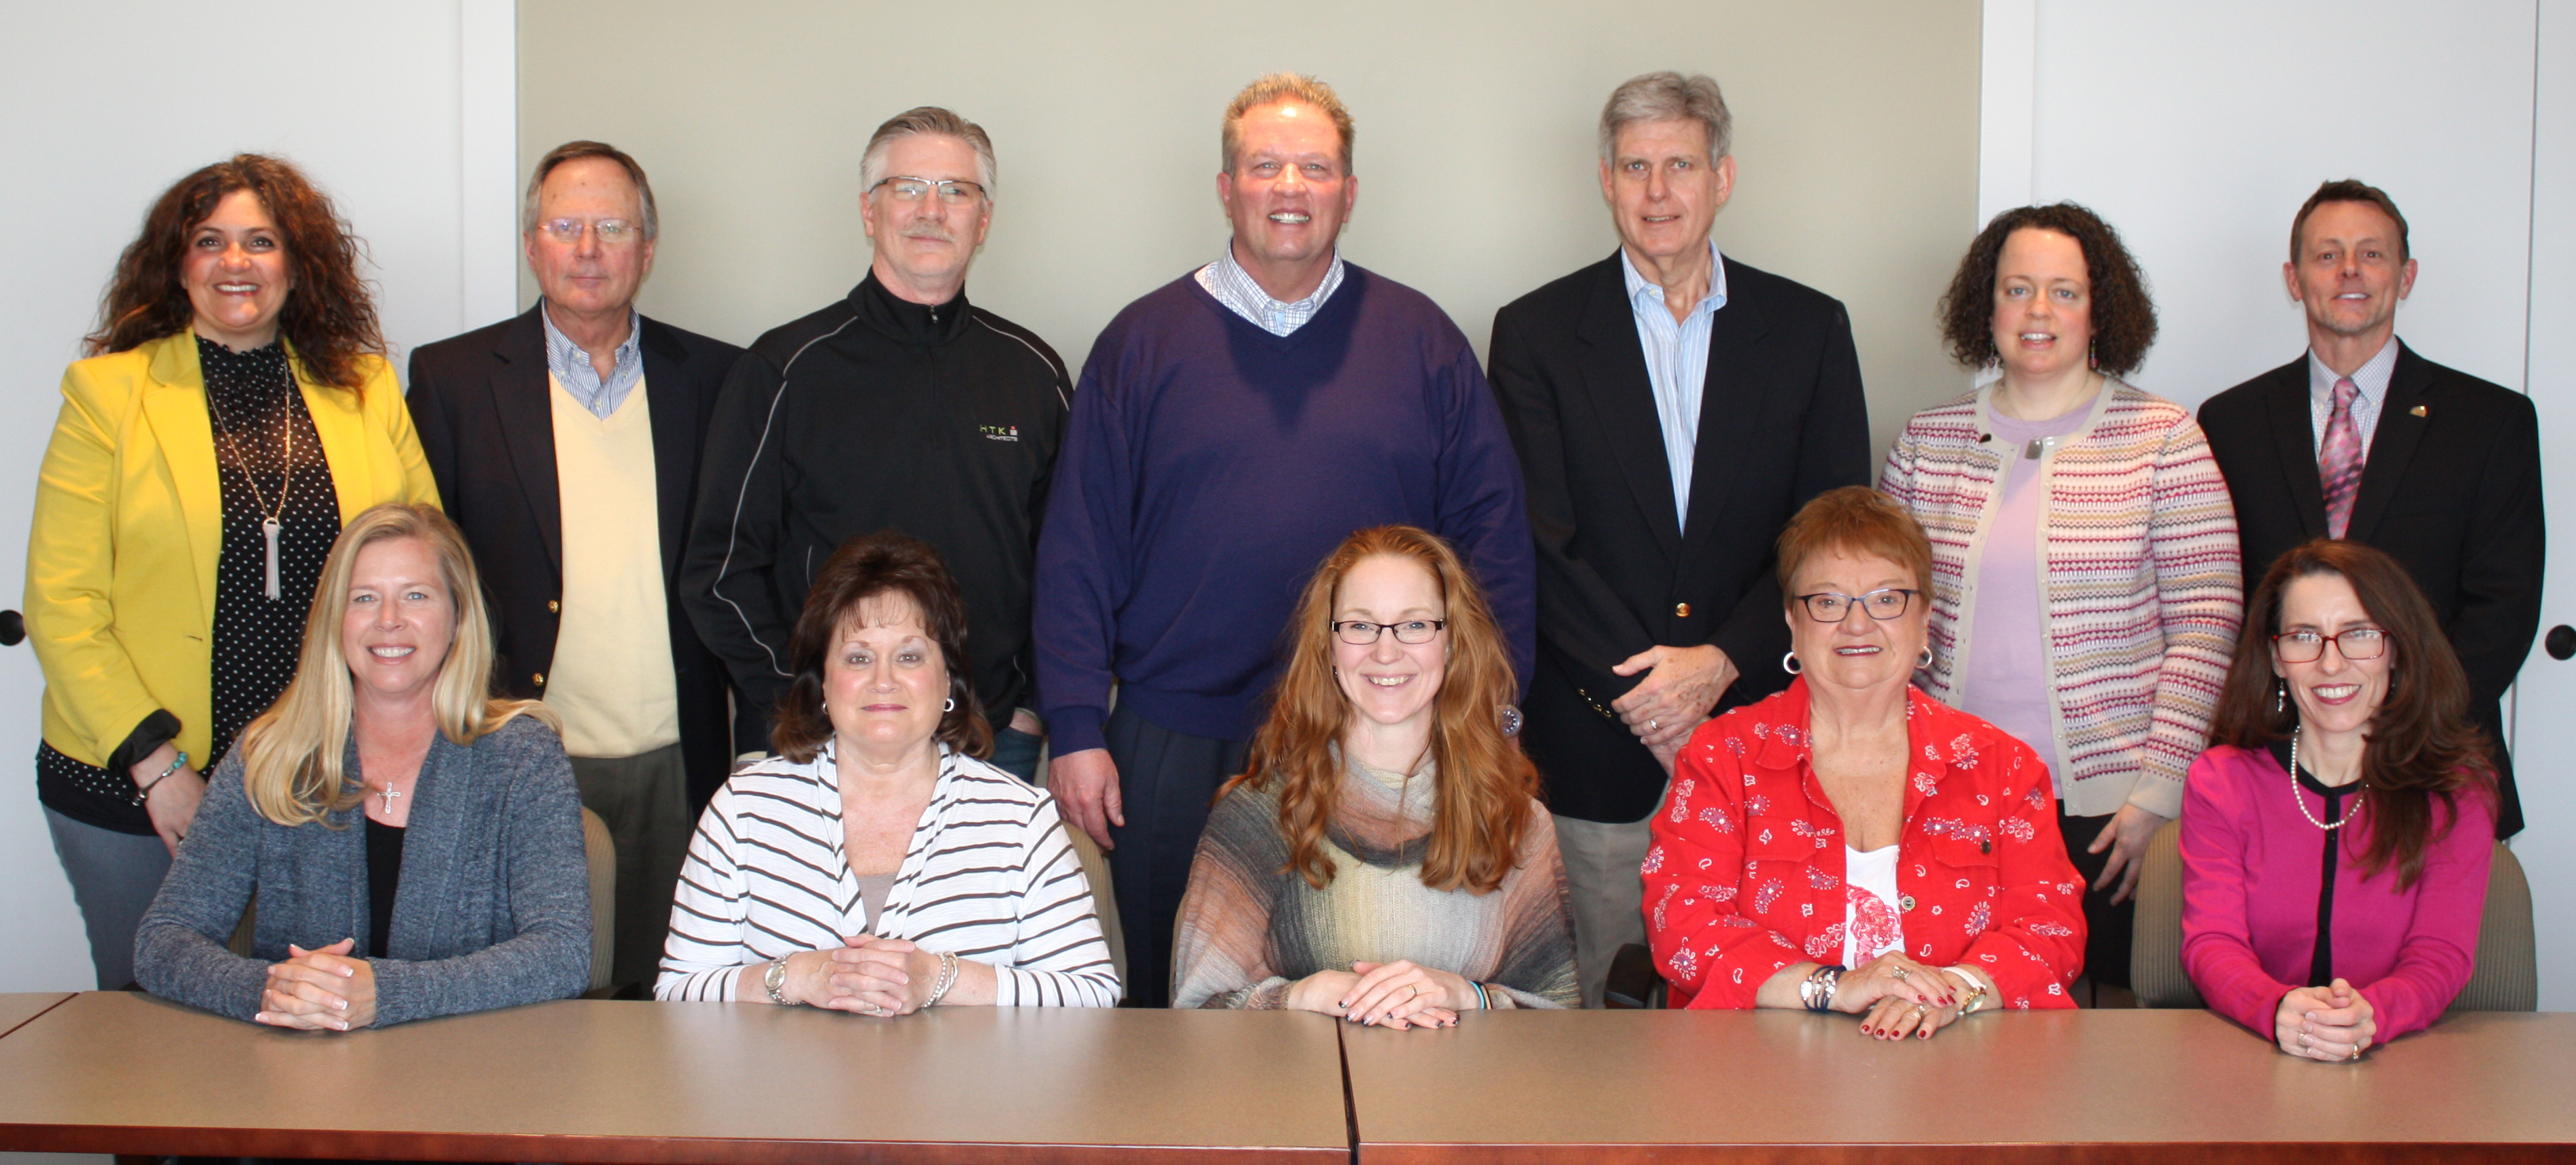 Auburn-Washburn Foundation Board of Directors